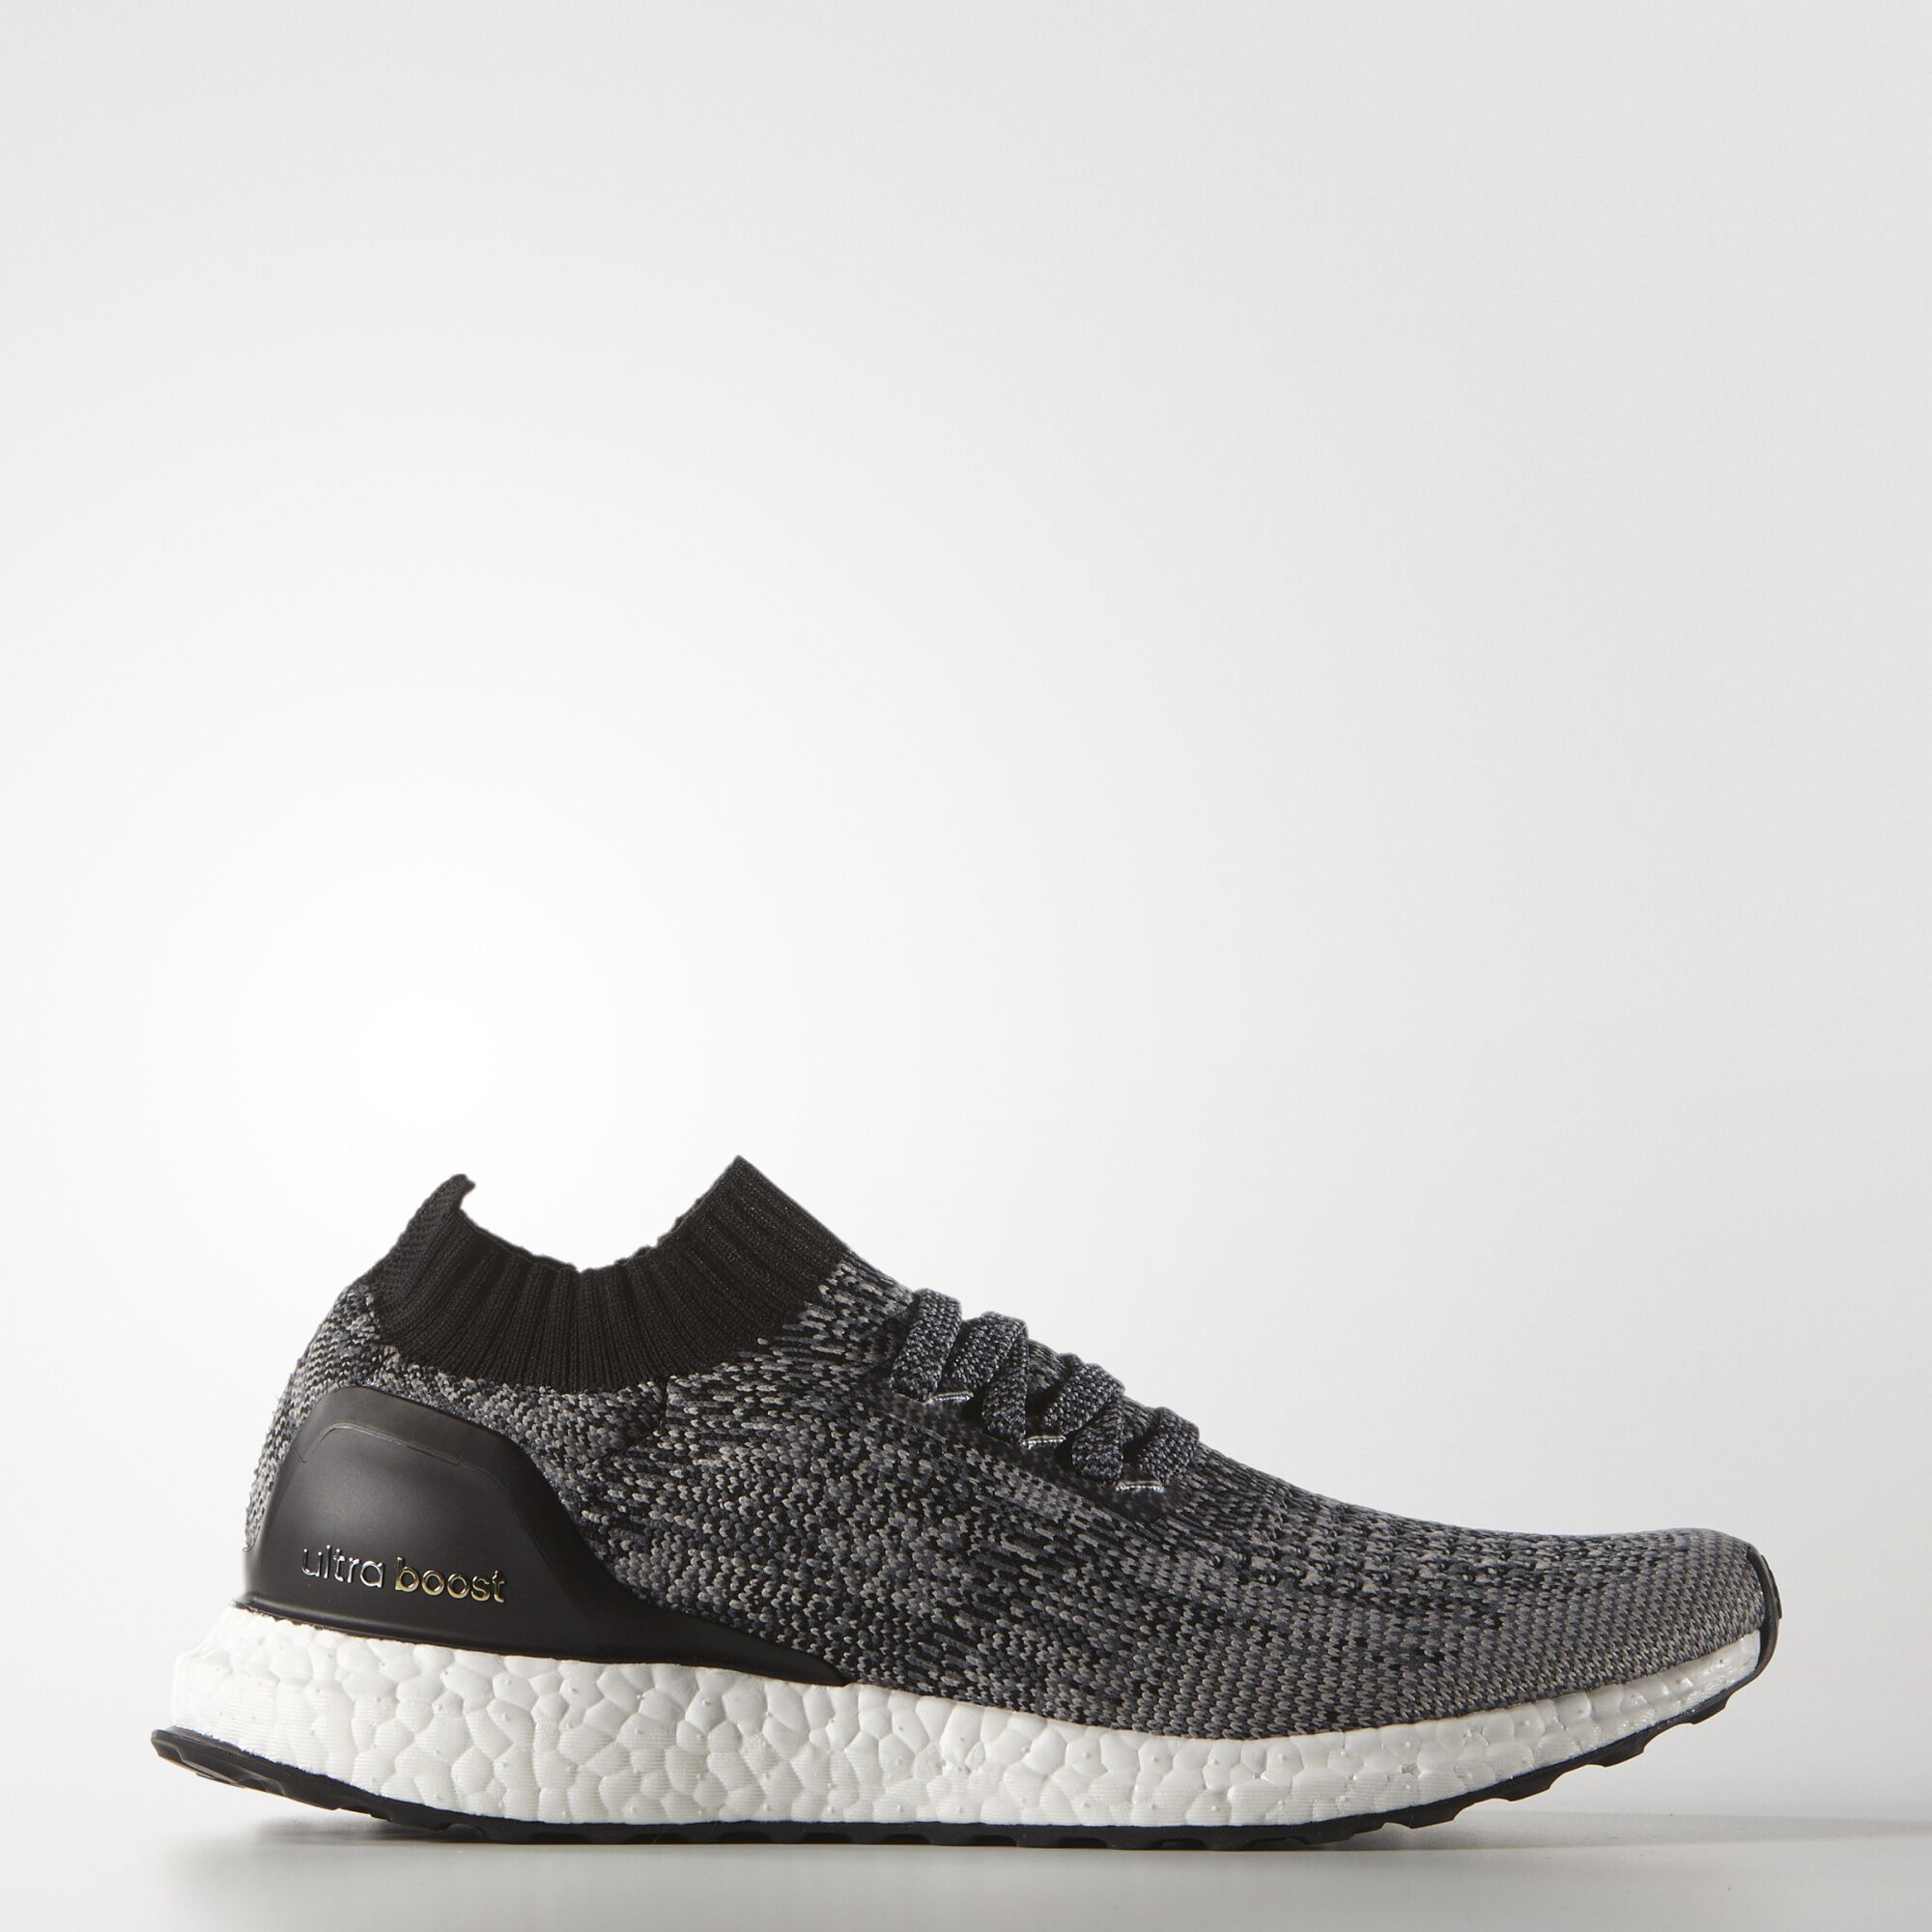 Adidas Ultra Boost Uncaged Black Women